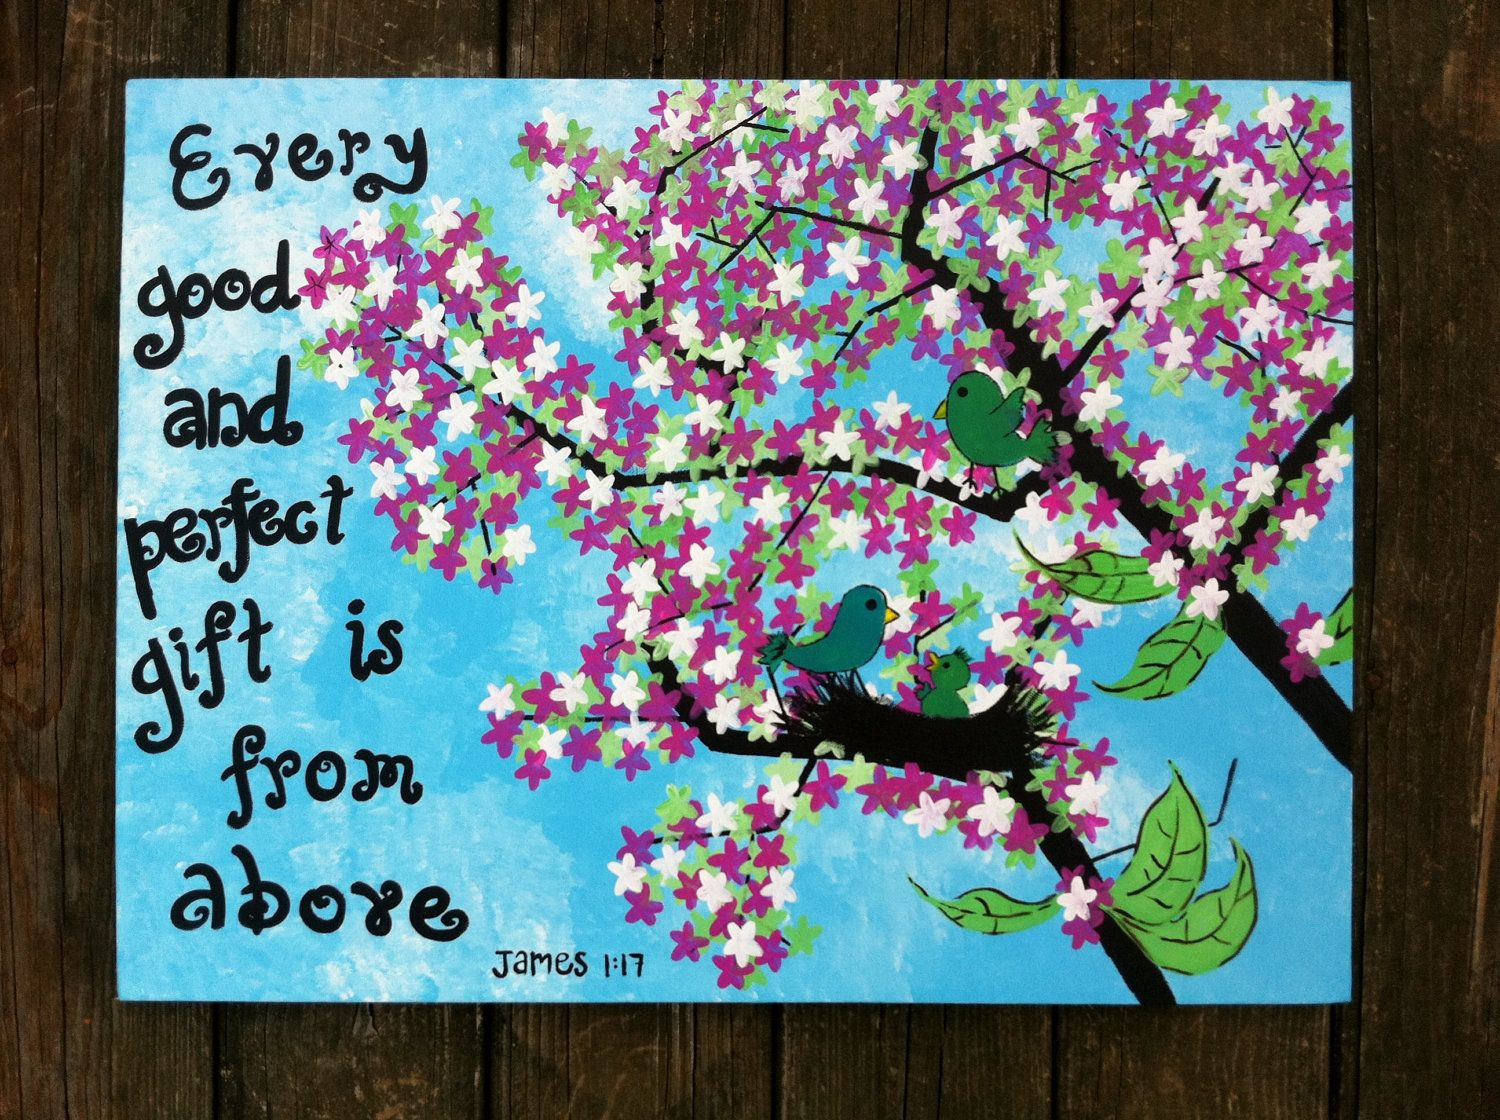 Bible Verse On Stretched Canvas With Baby Bird Acrylic Hand Made Original Painting For Children Girls Via Etsy